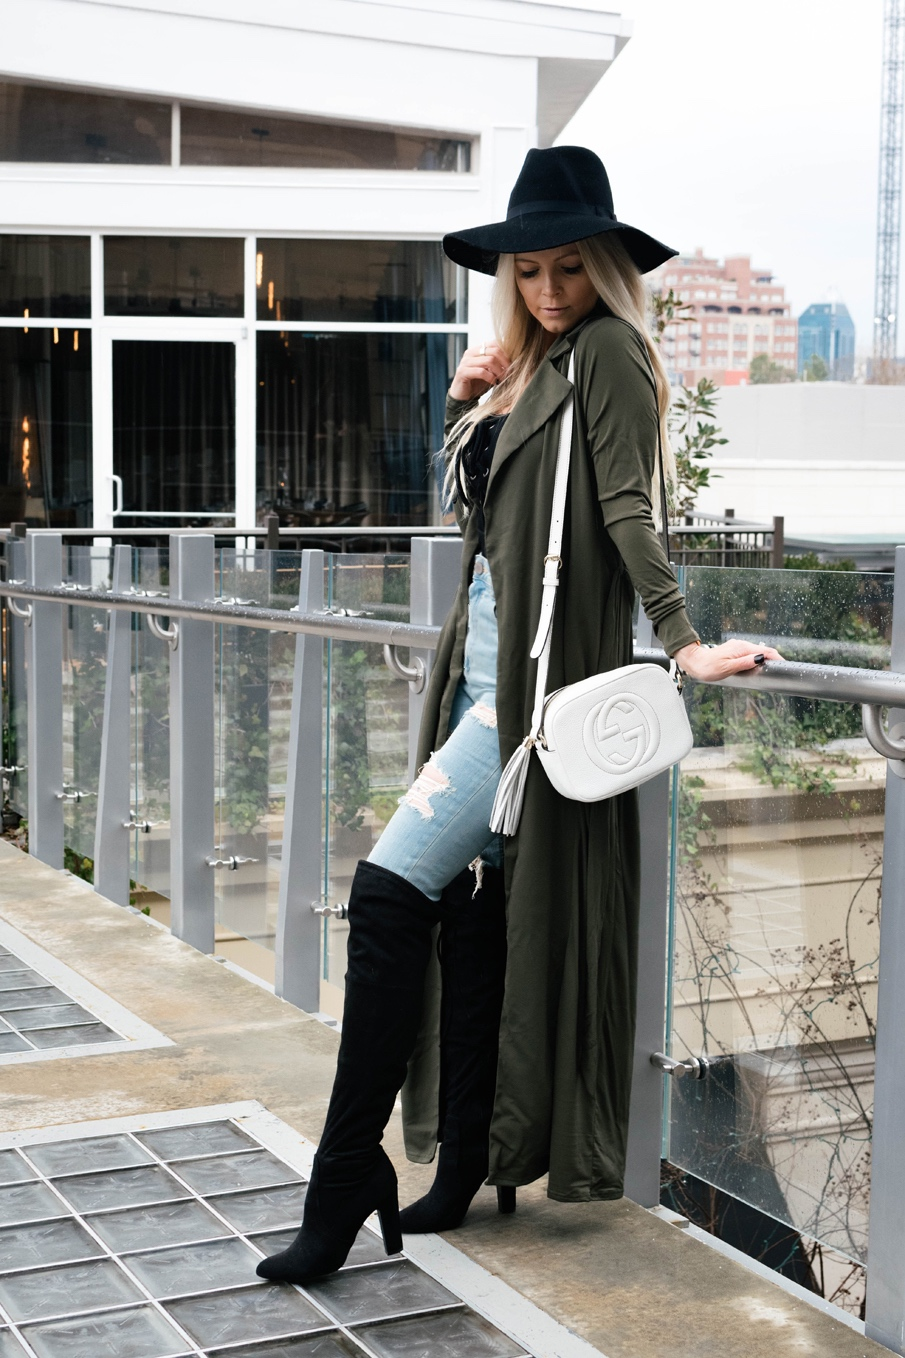 duster outfit